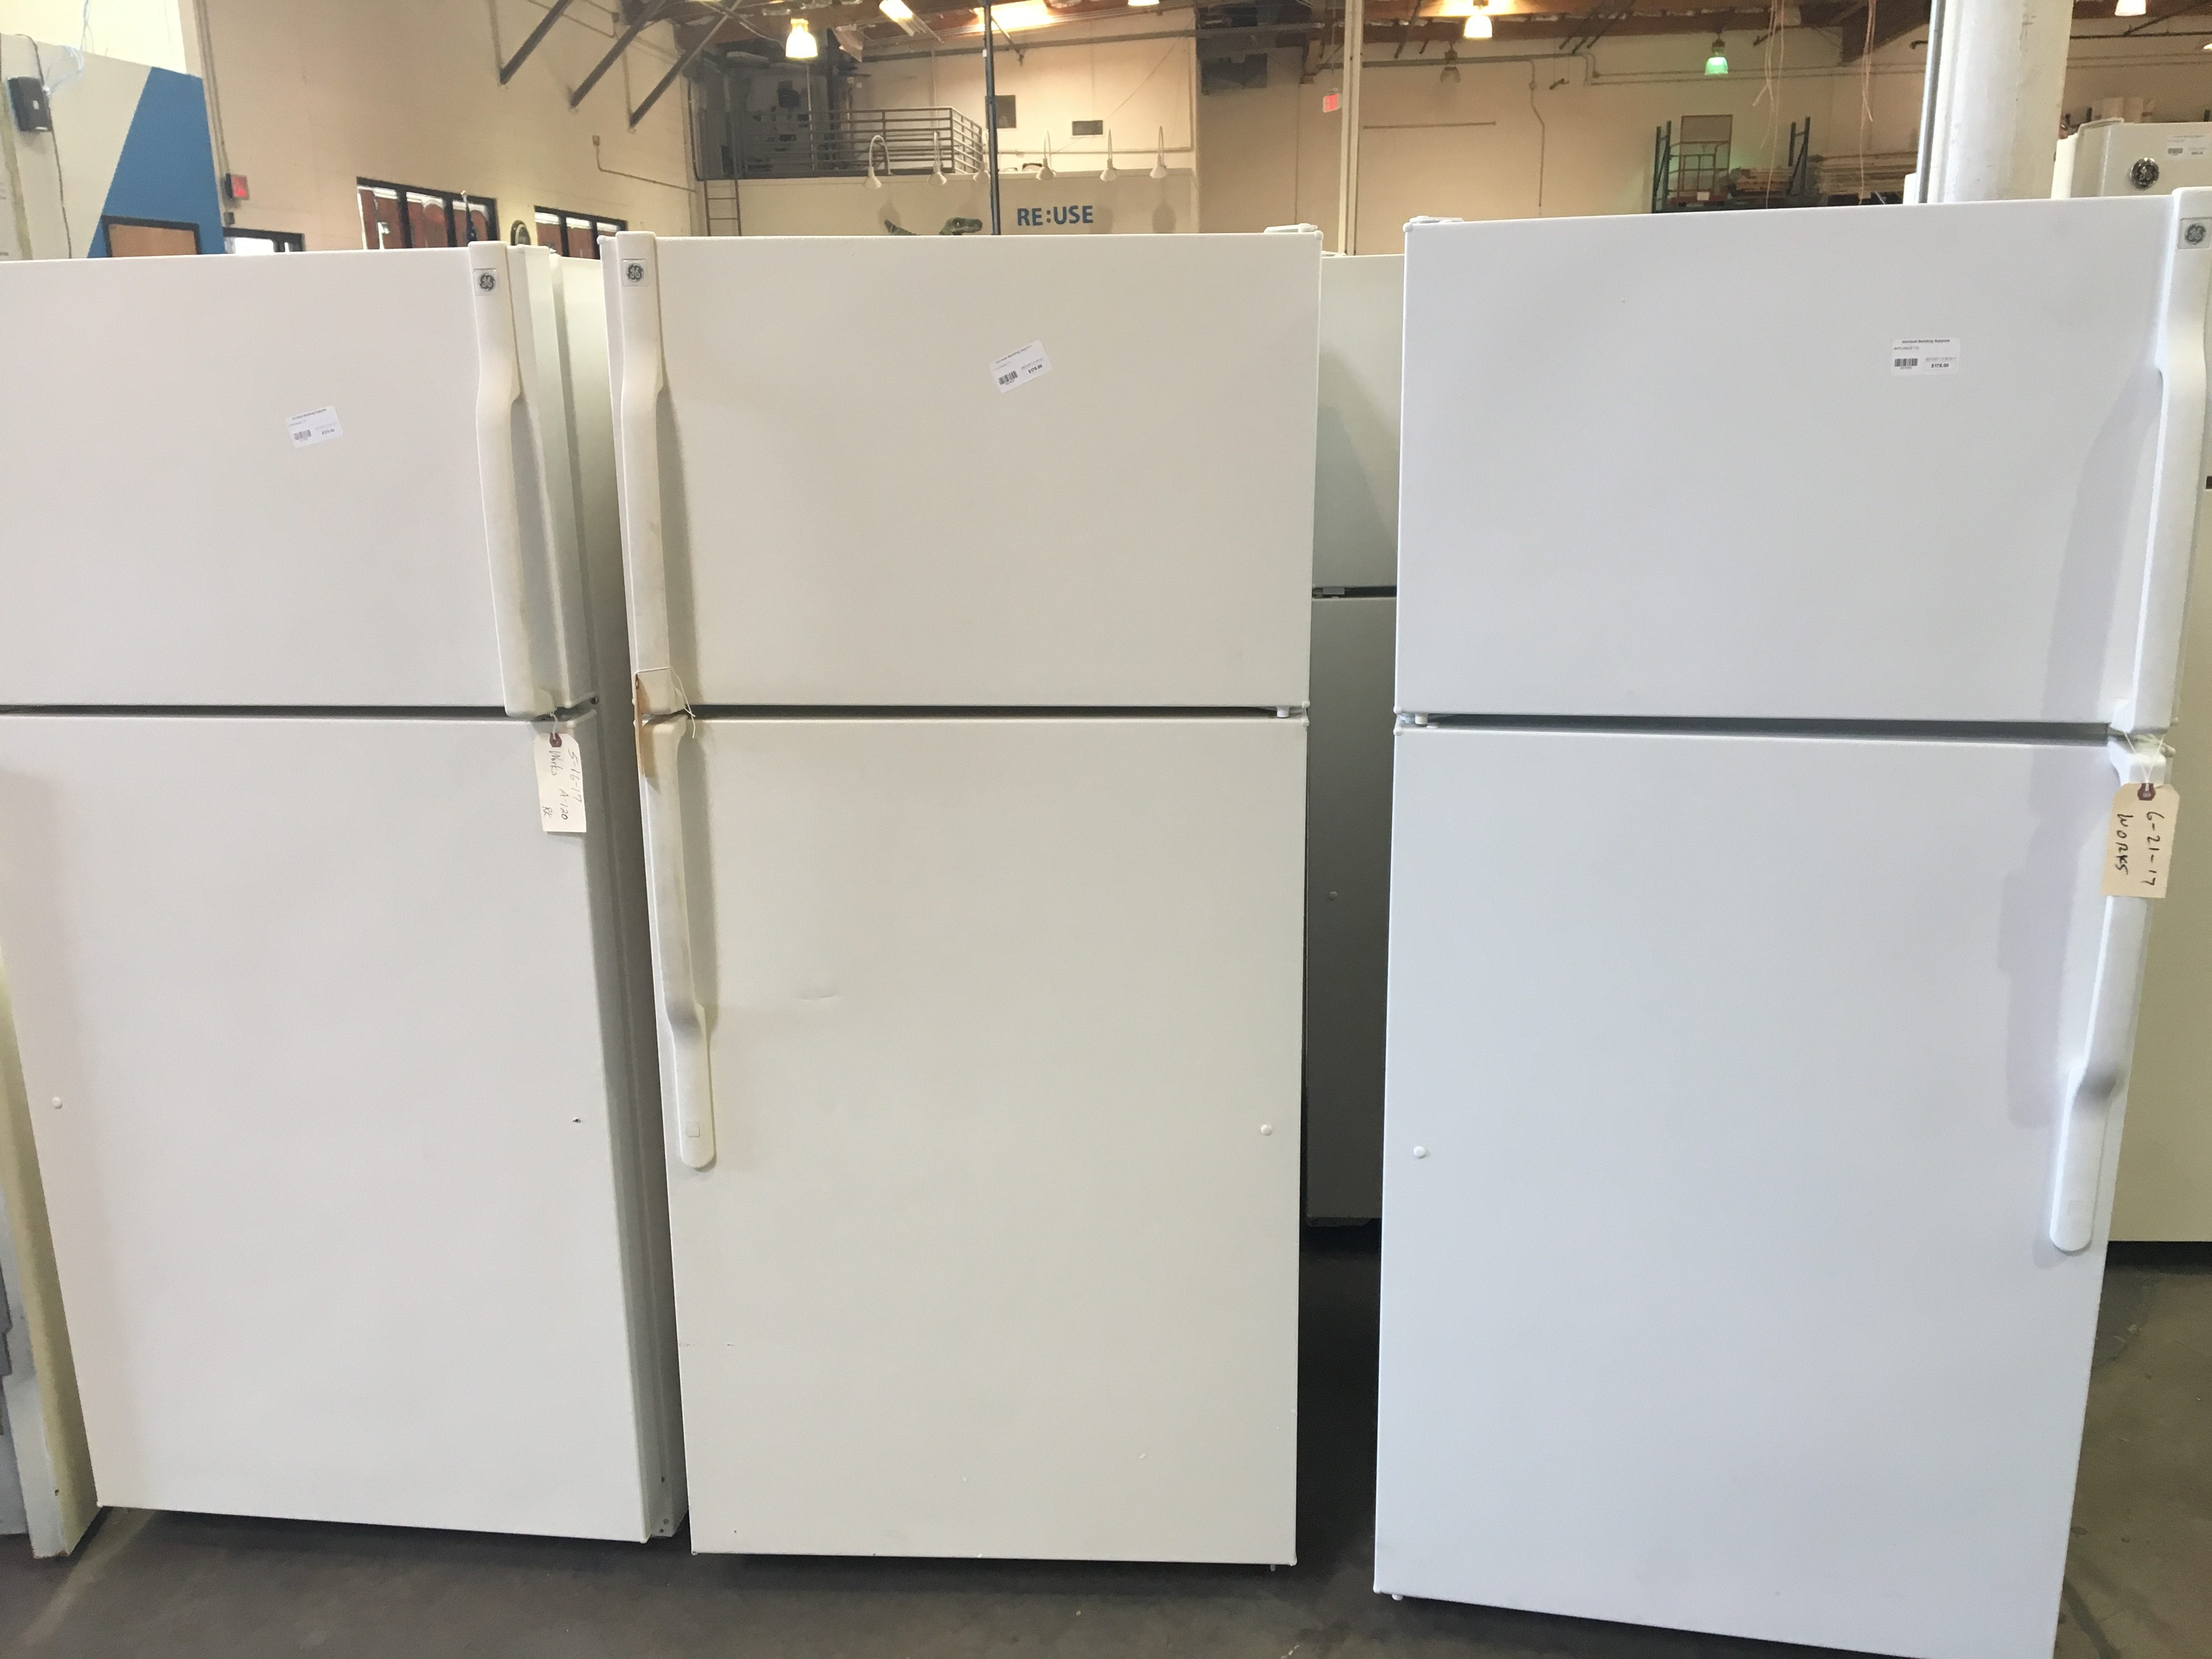 We accept sinks, appliances, light fixtures, cabinets, and a many other building materials for reuse.